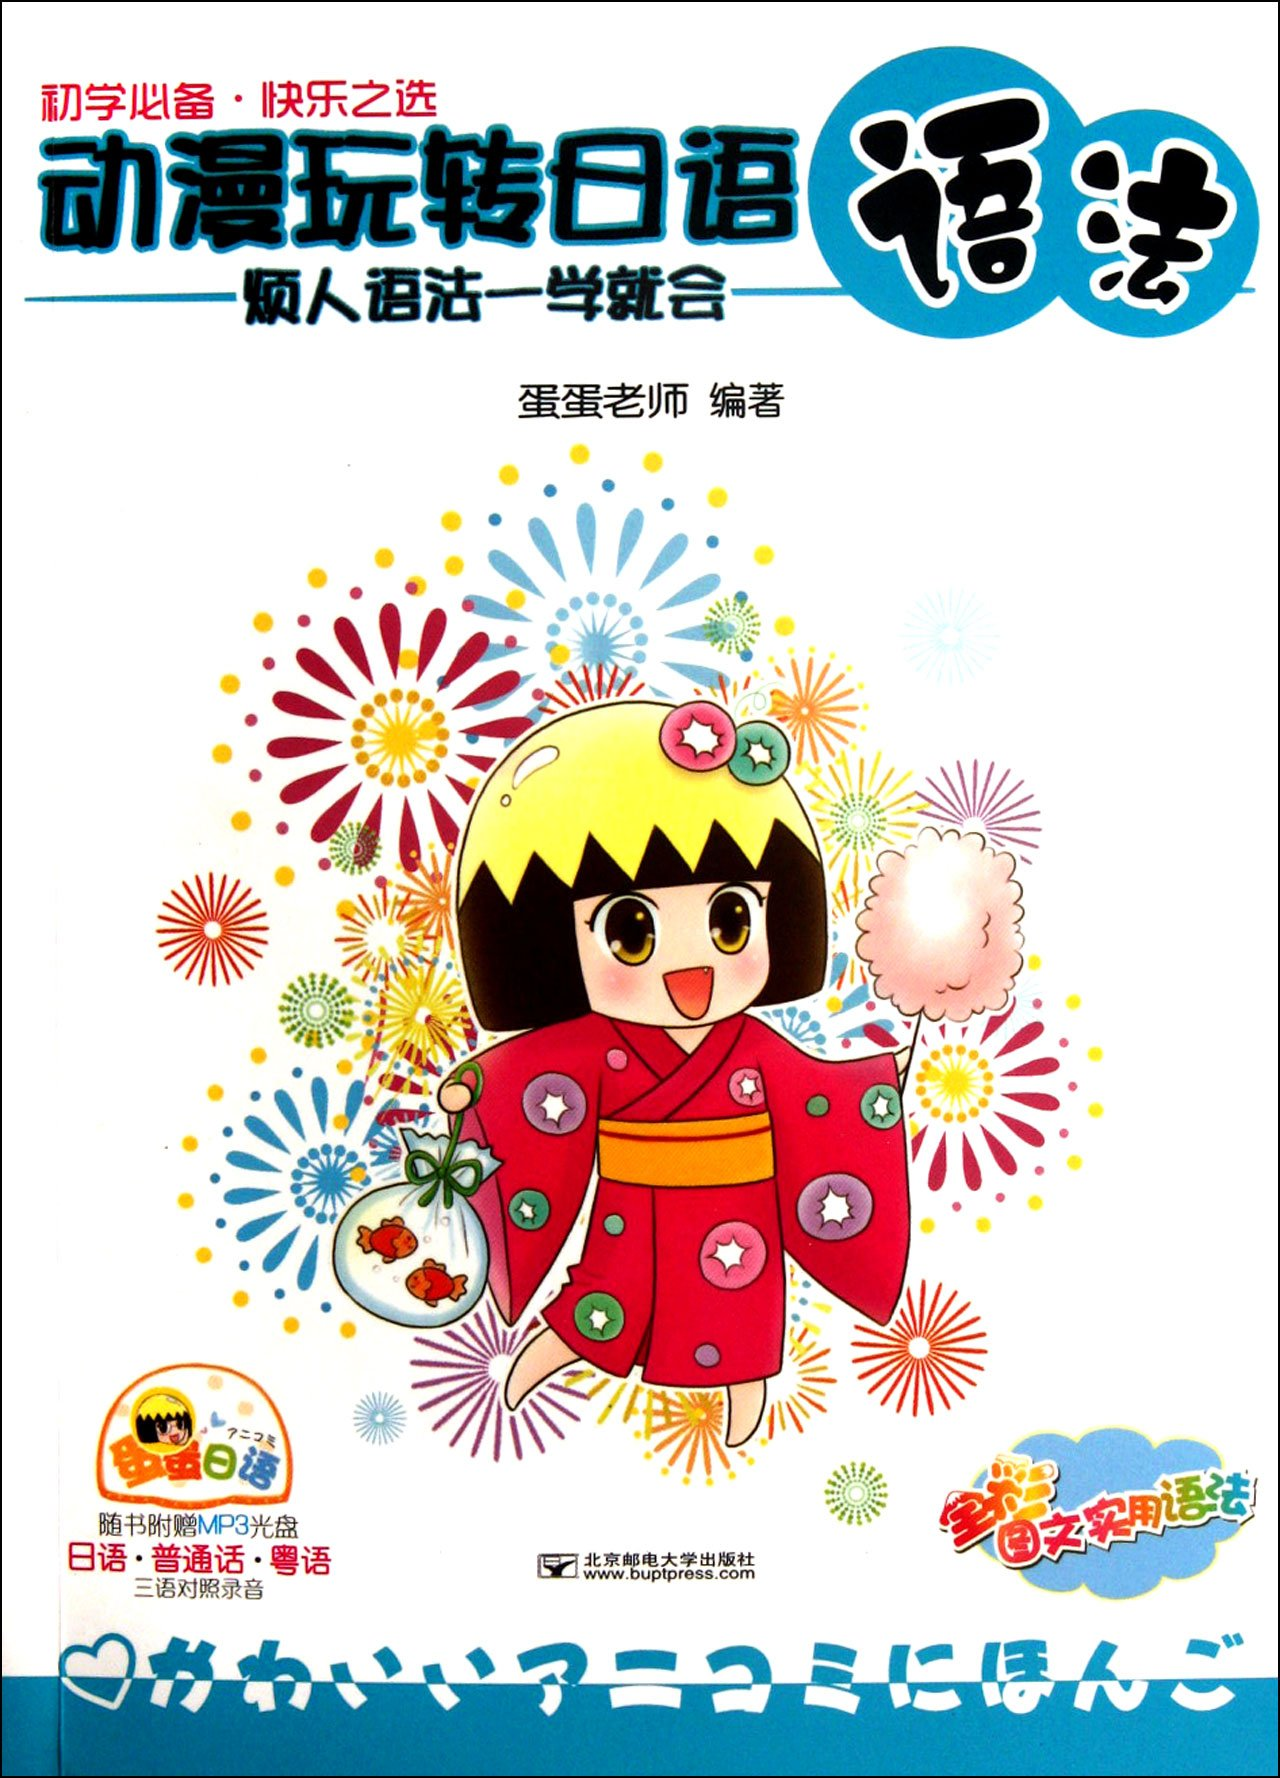 Download Anime Japanese Grammar-Short Term to Annoying Japanese Grammar-Presenting MP3 CD (Chinese Edition) ebook